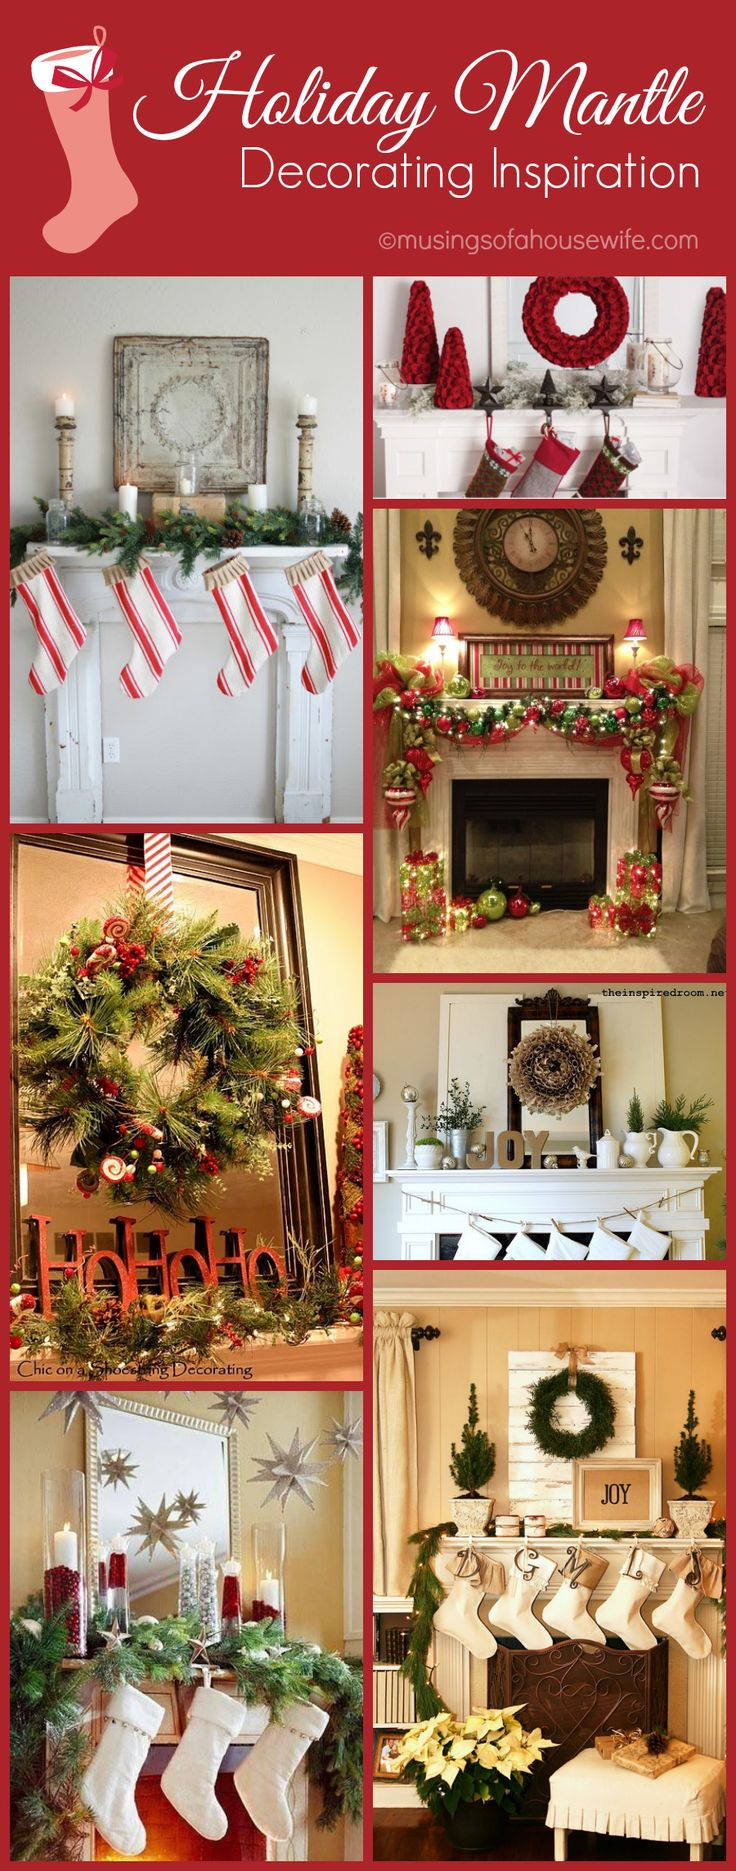 These are lovely! Mantle decorating ideas fro @Jo-Lynne Shane: Mantle Idea, Decorating Ideas, Christmas Decorations, Mantle Decorating, Holiday Decorating, Mantle Decoration, Christmas Mantles, Holiday Mantle, Christmas Mantels